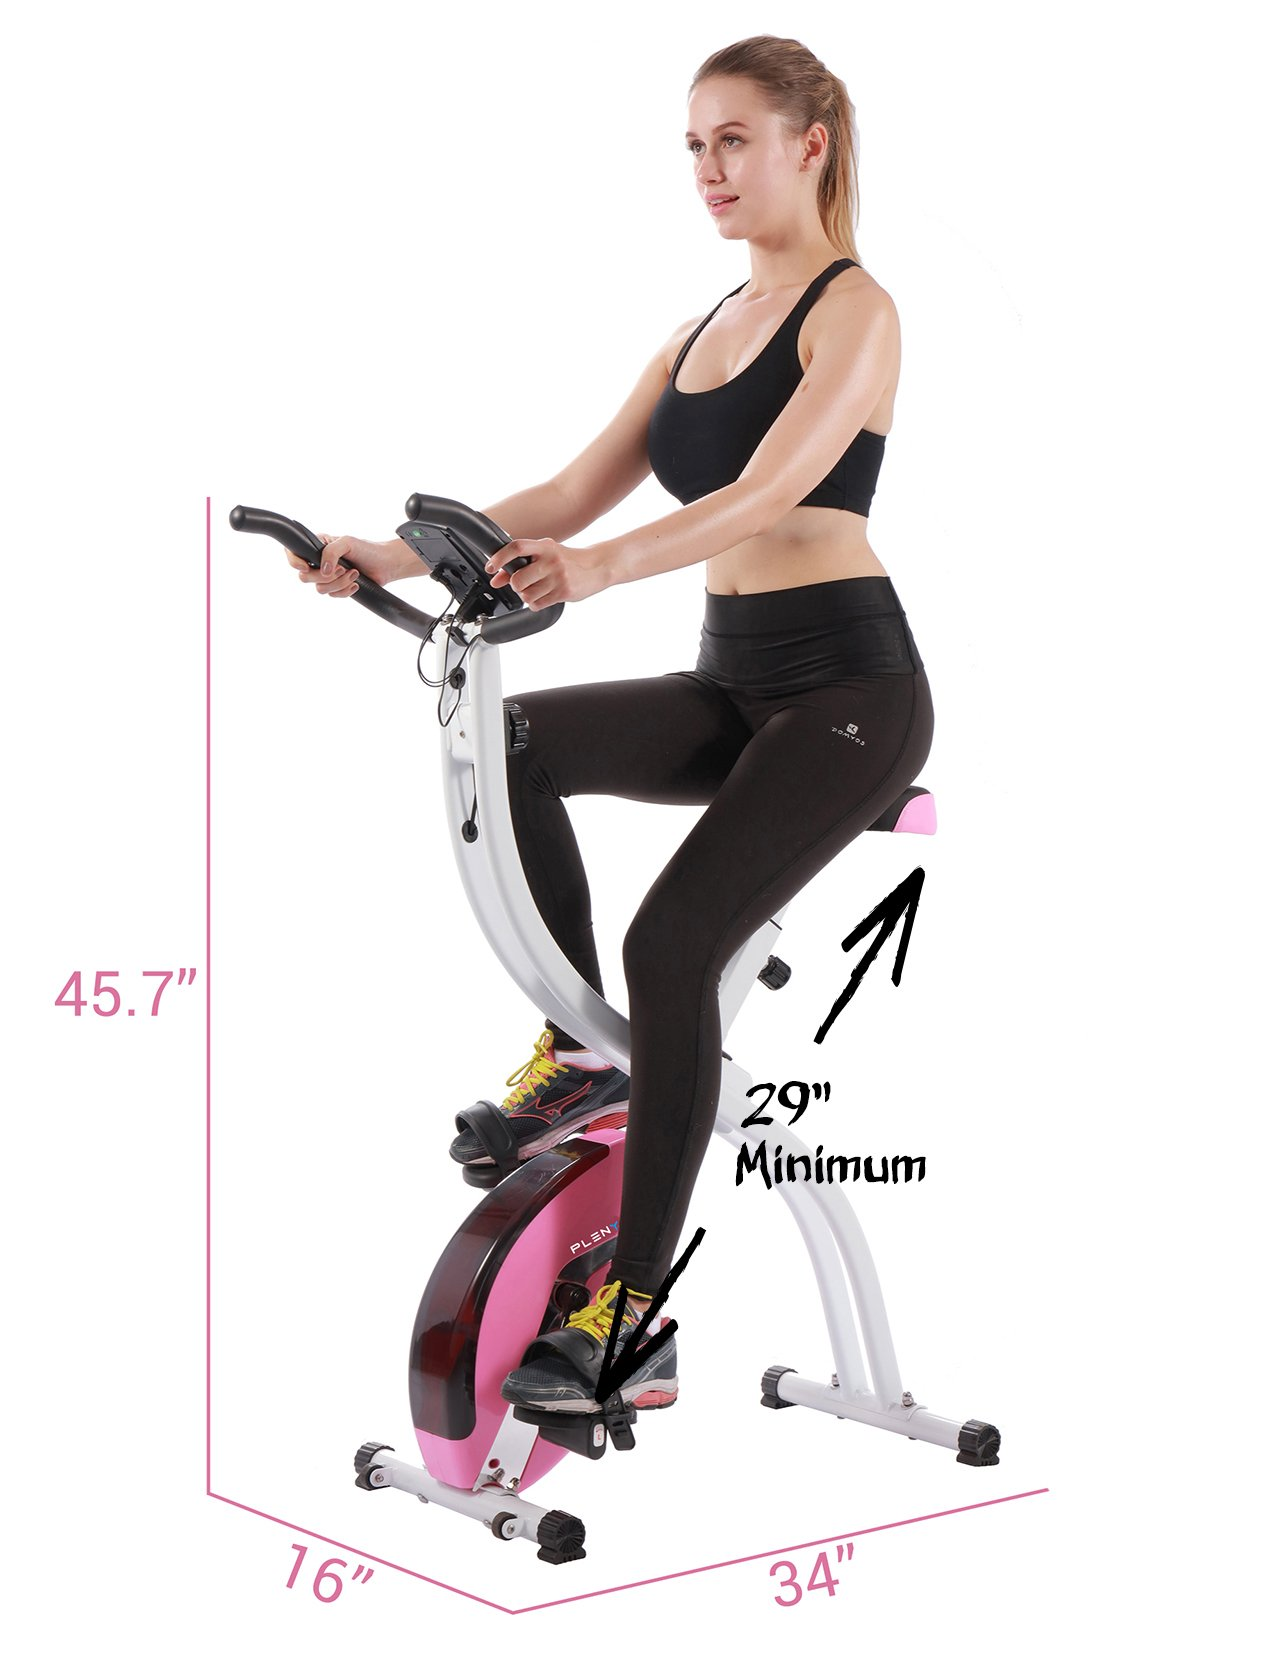 PLENY Foldable Upright Stationary Exercise Bike with 16 Level Resistance, New Exercise Monitor with Phone/Tablet Holder (Pink) by PLENY (Image #5)